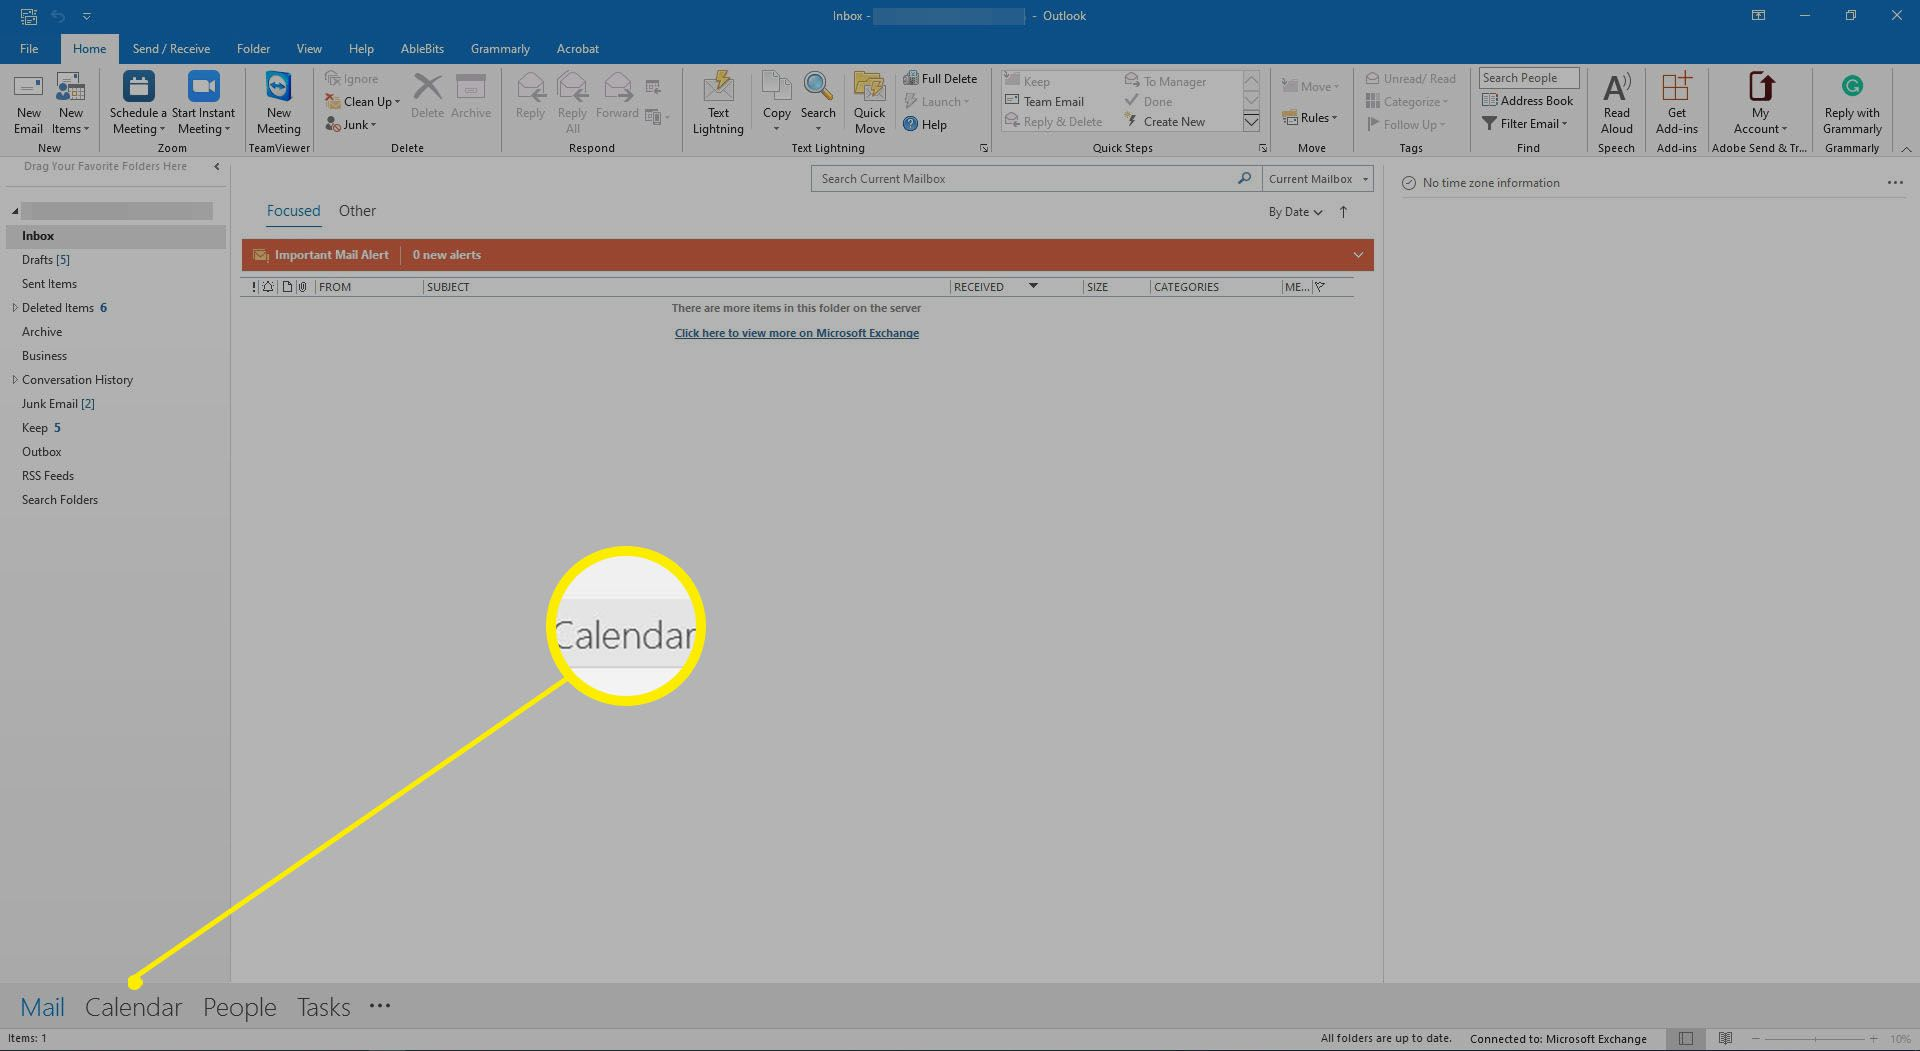 Outlook 2019 showing the View Switcher to access the Outlook Calendar.